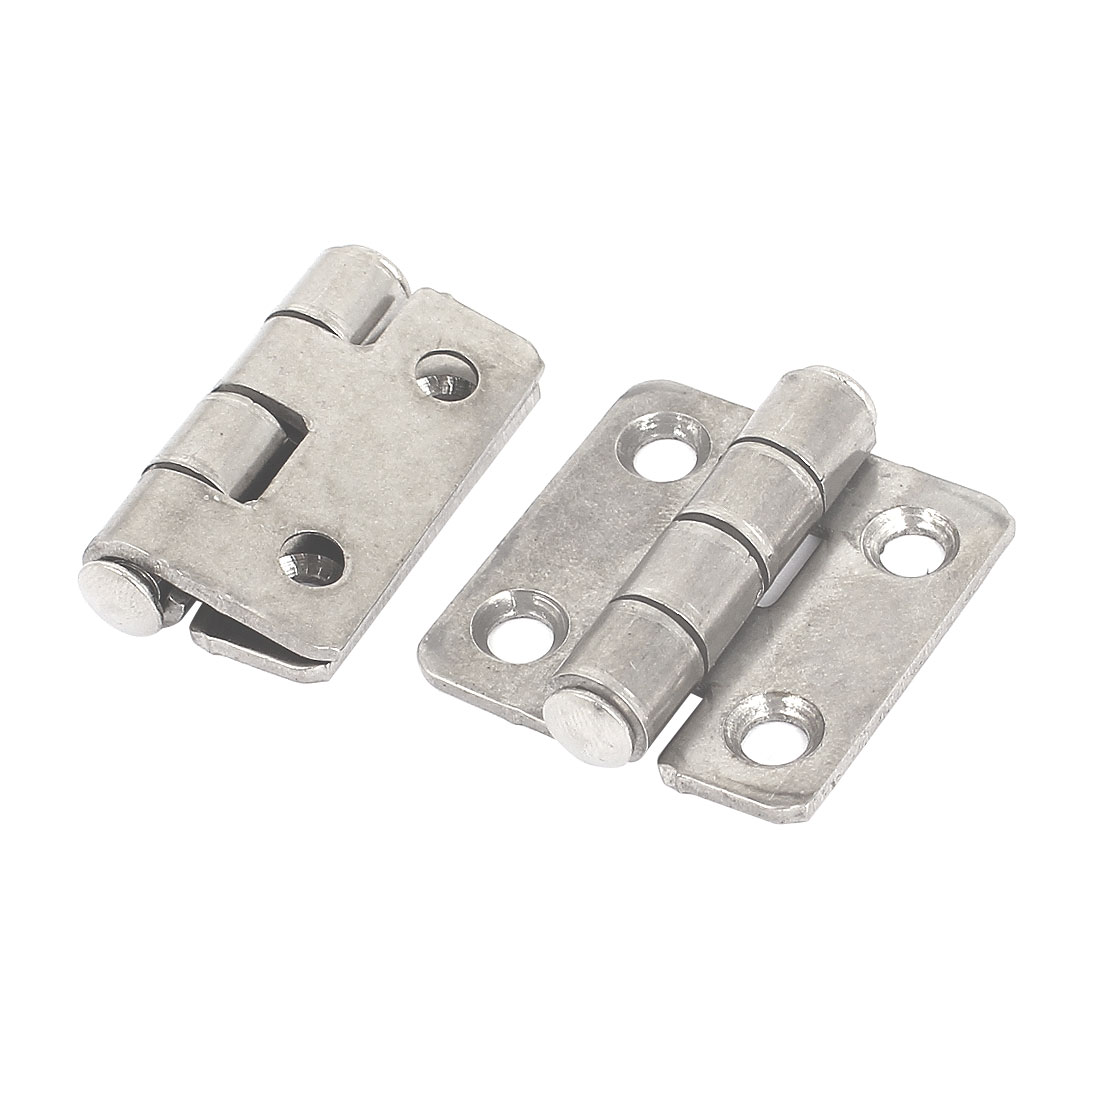 Cabinet Cupboard Door 38mm x 35mm Silver Tone Rectangle Metal Butt Hinge 2pcs